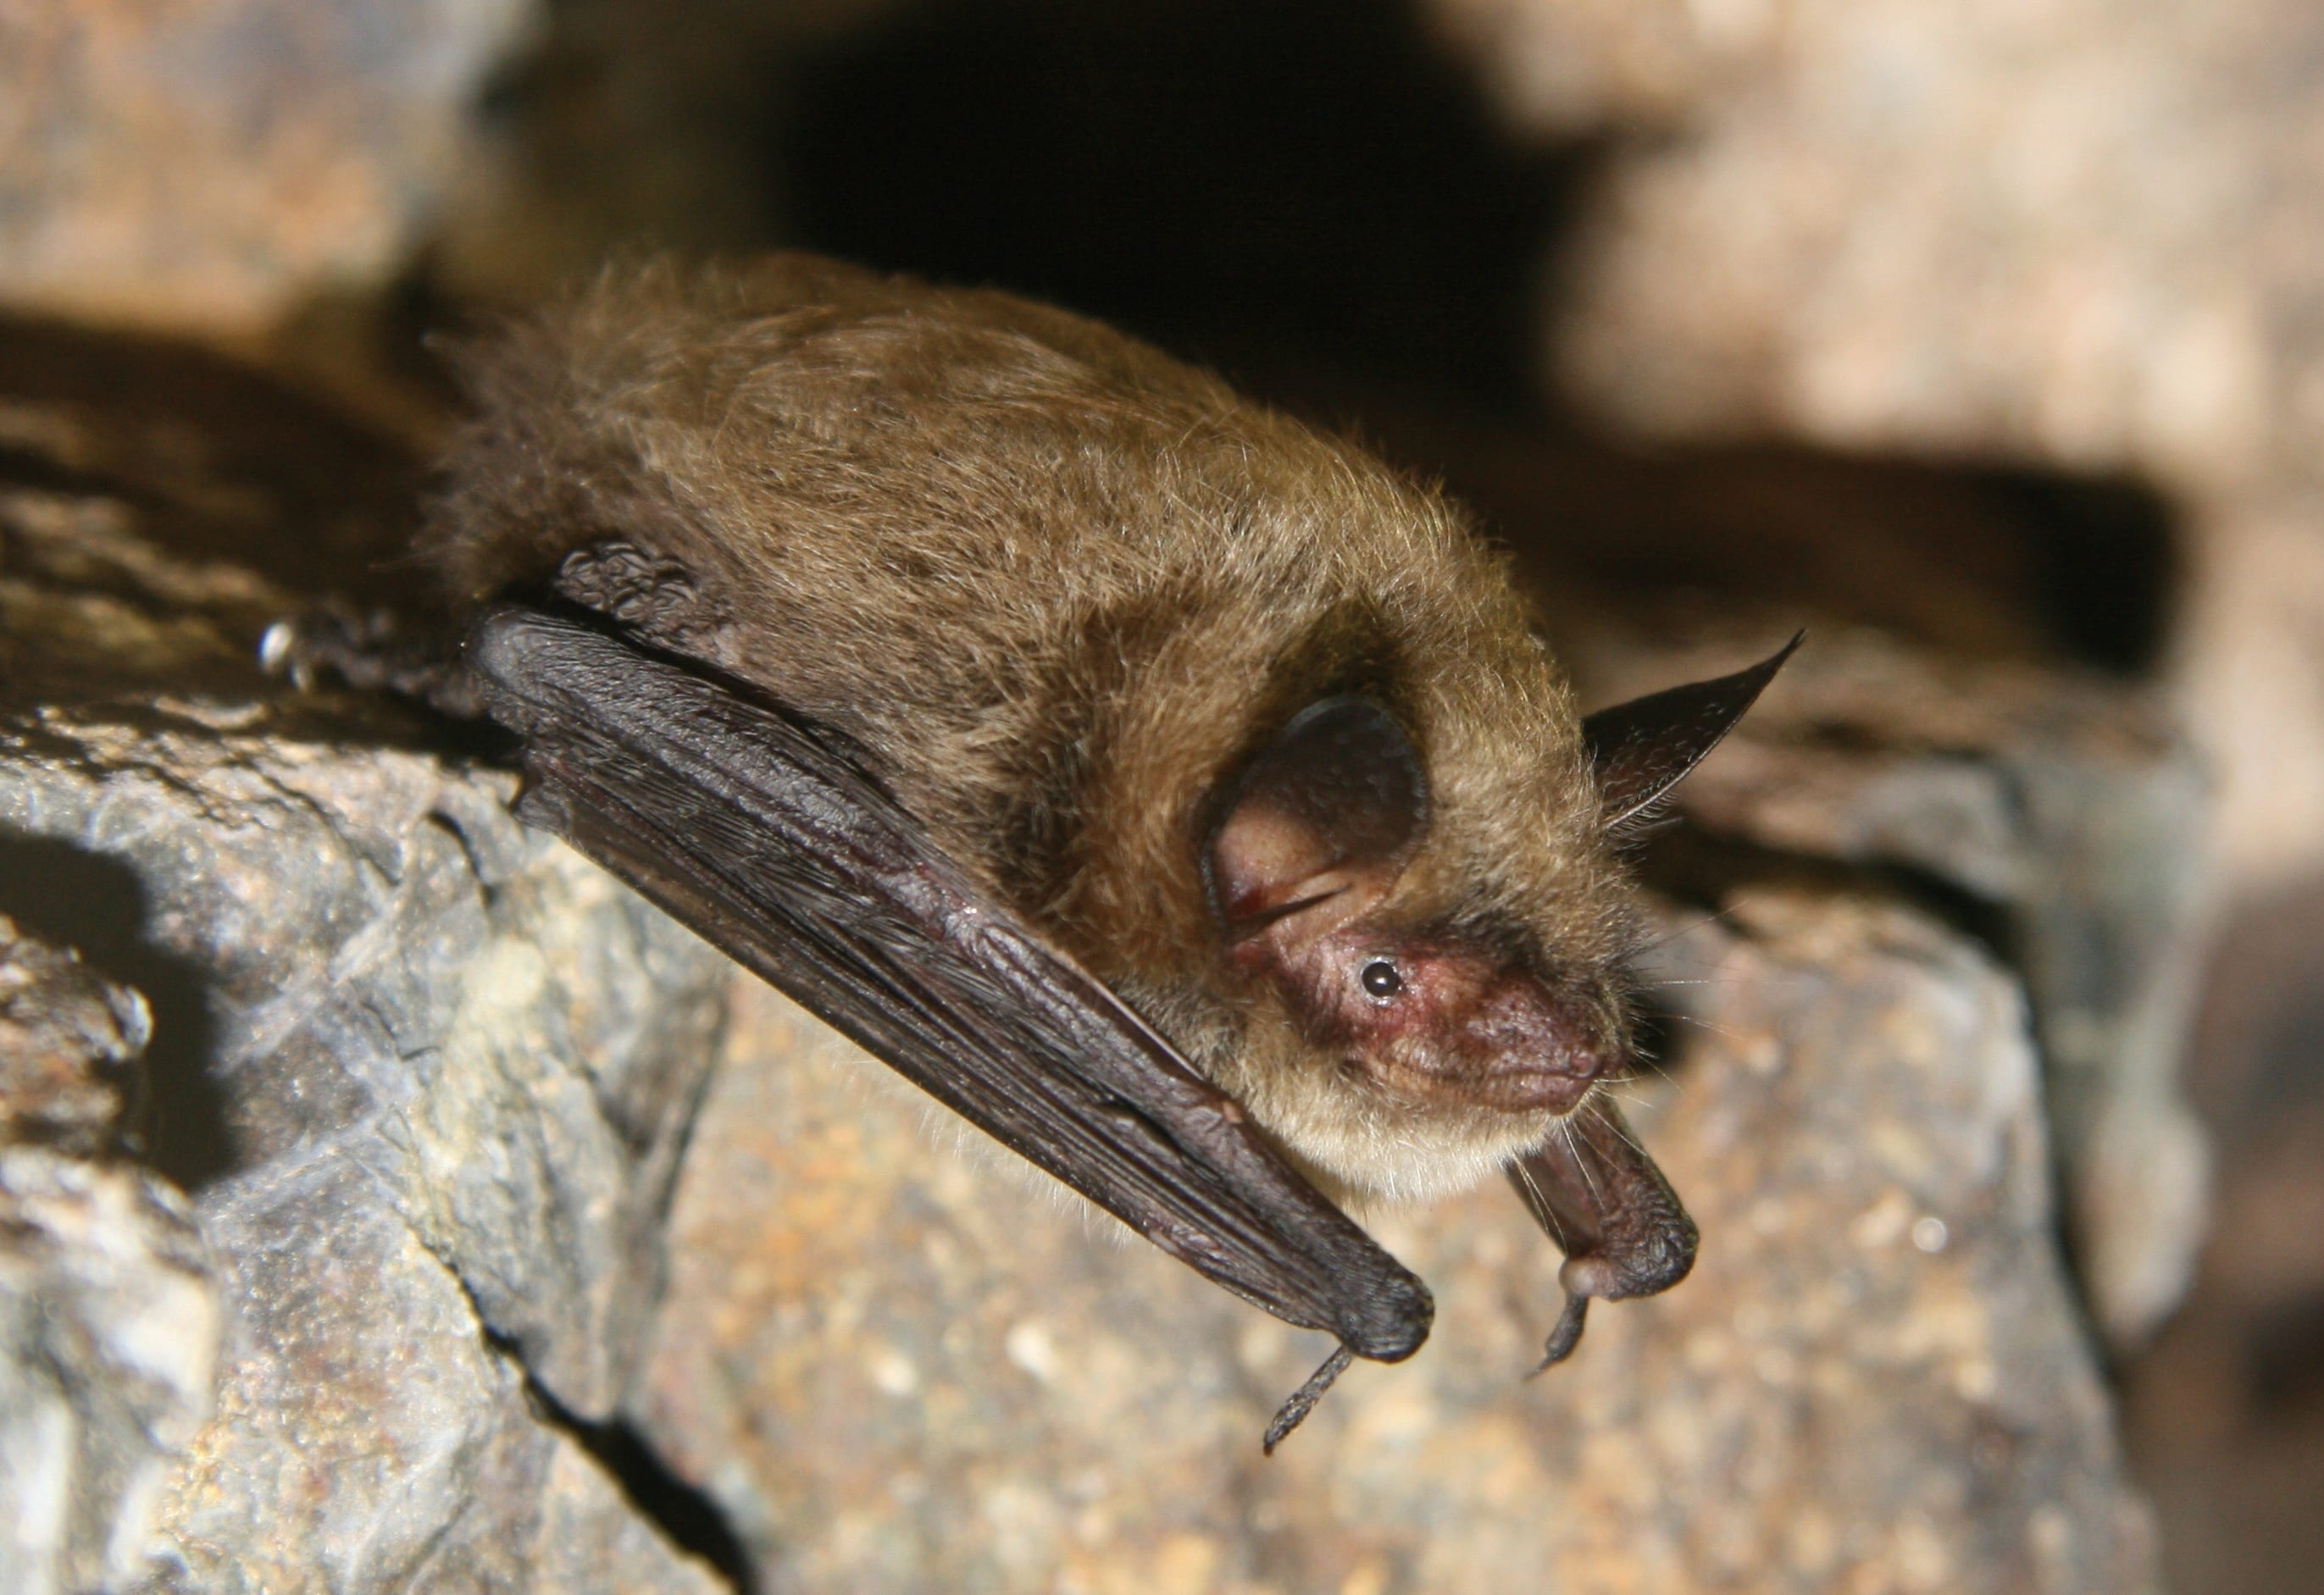 Looking At What Happened To Bats in North America